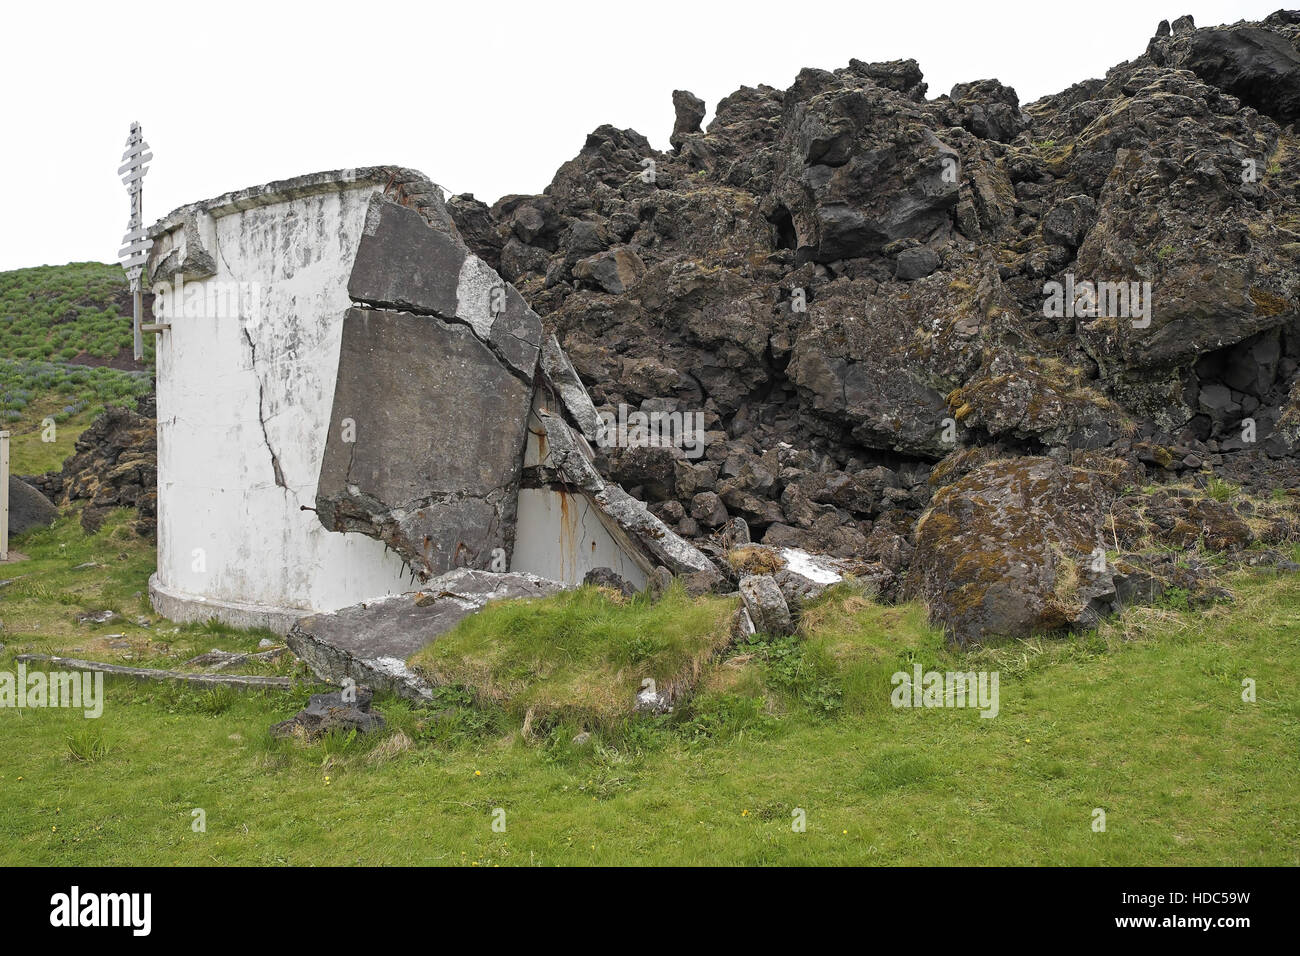 Edge of the lava field and destroyed concrete tank caused by the eruption of Eldfell in 1973, Heimaey, Iceland. - Stock Image